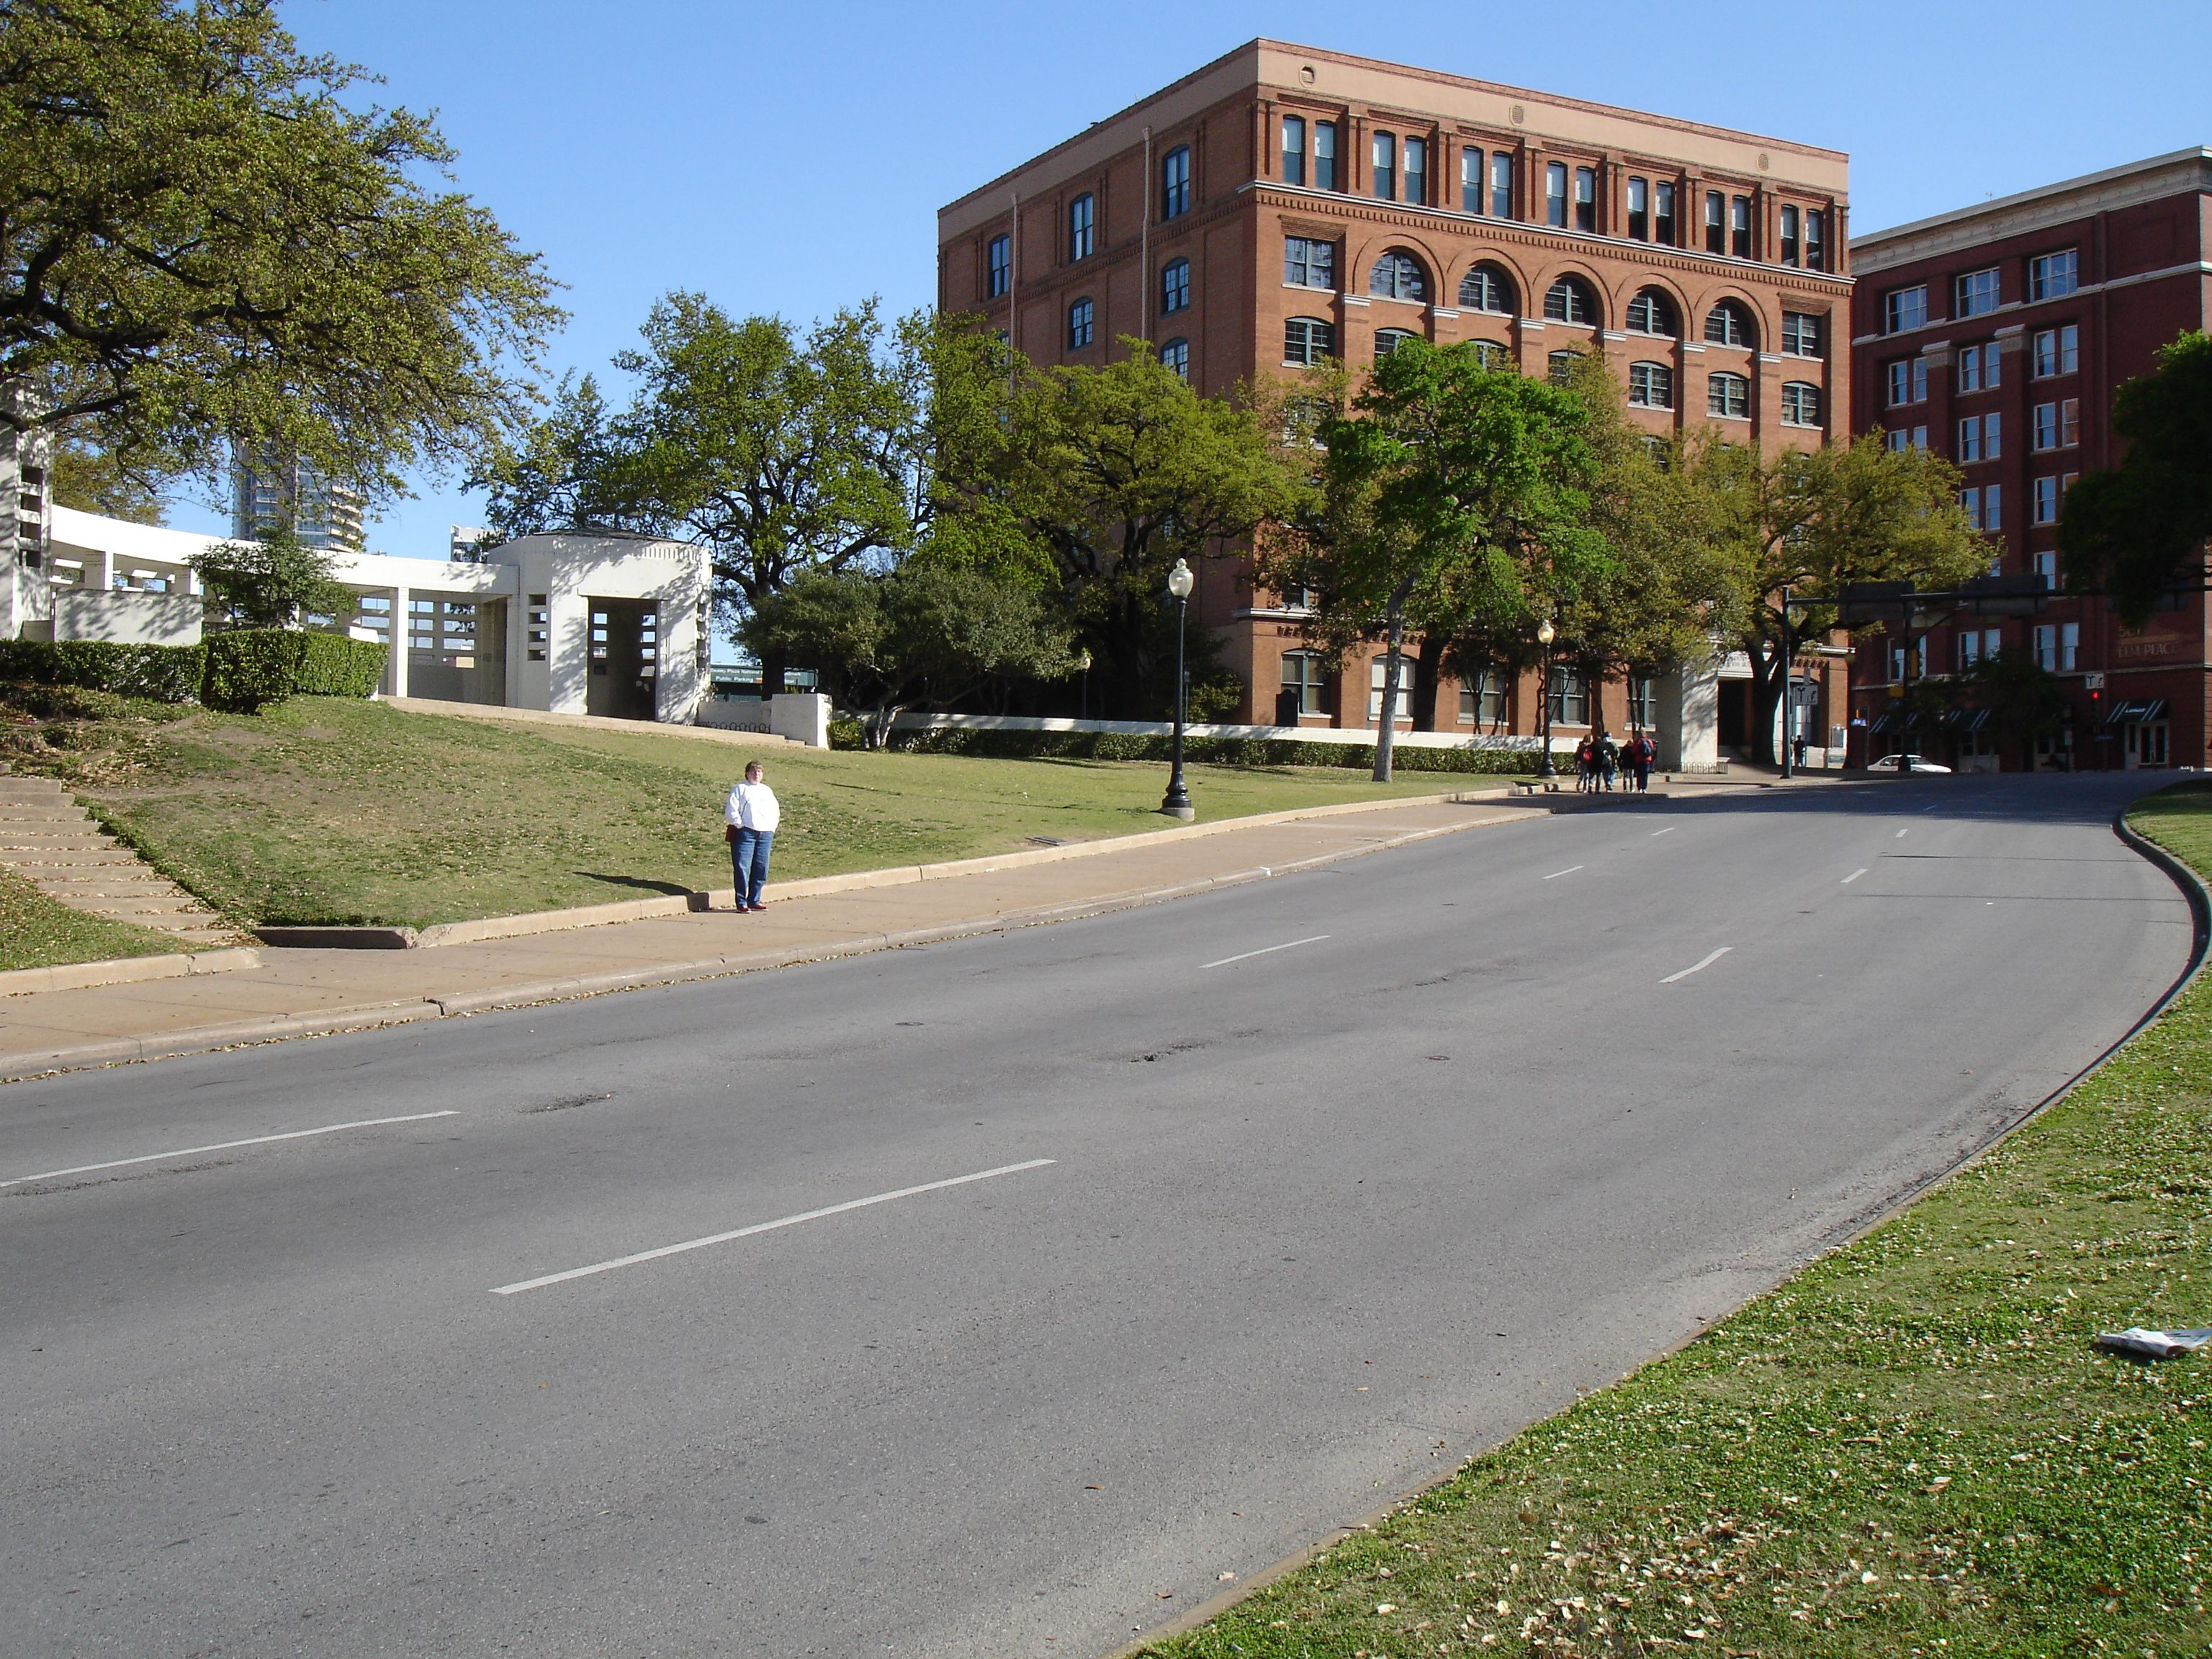 Dealey plaza and the sixth floor book depository in dallas